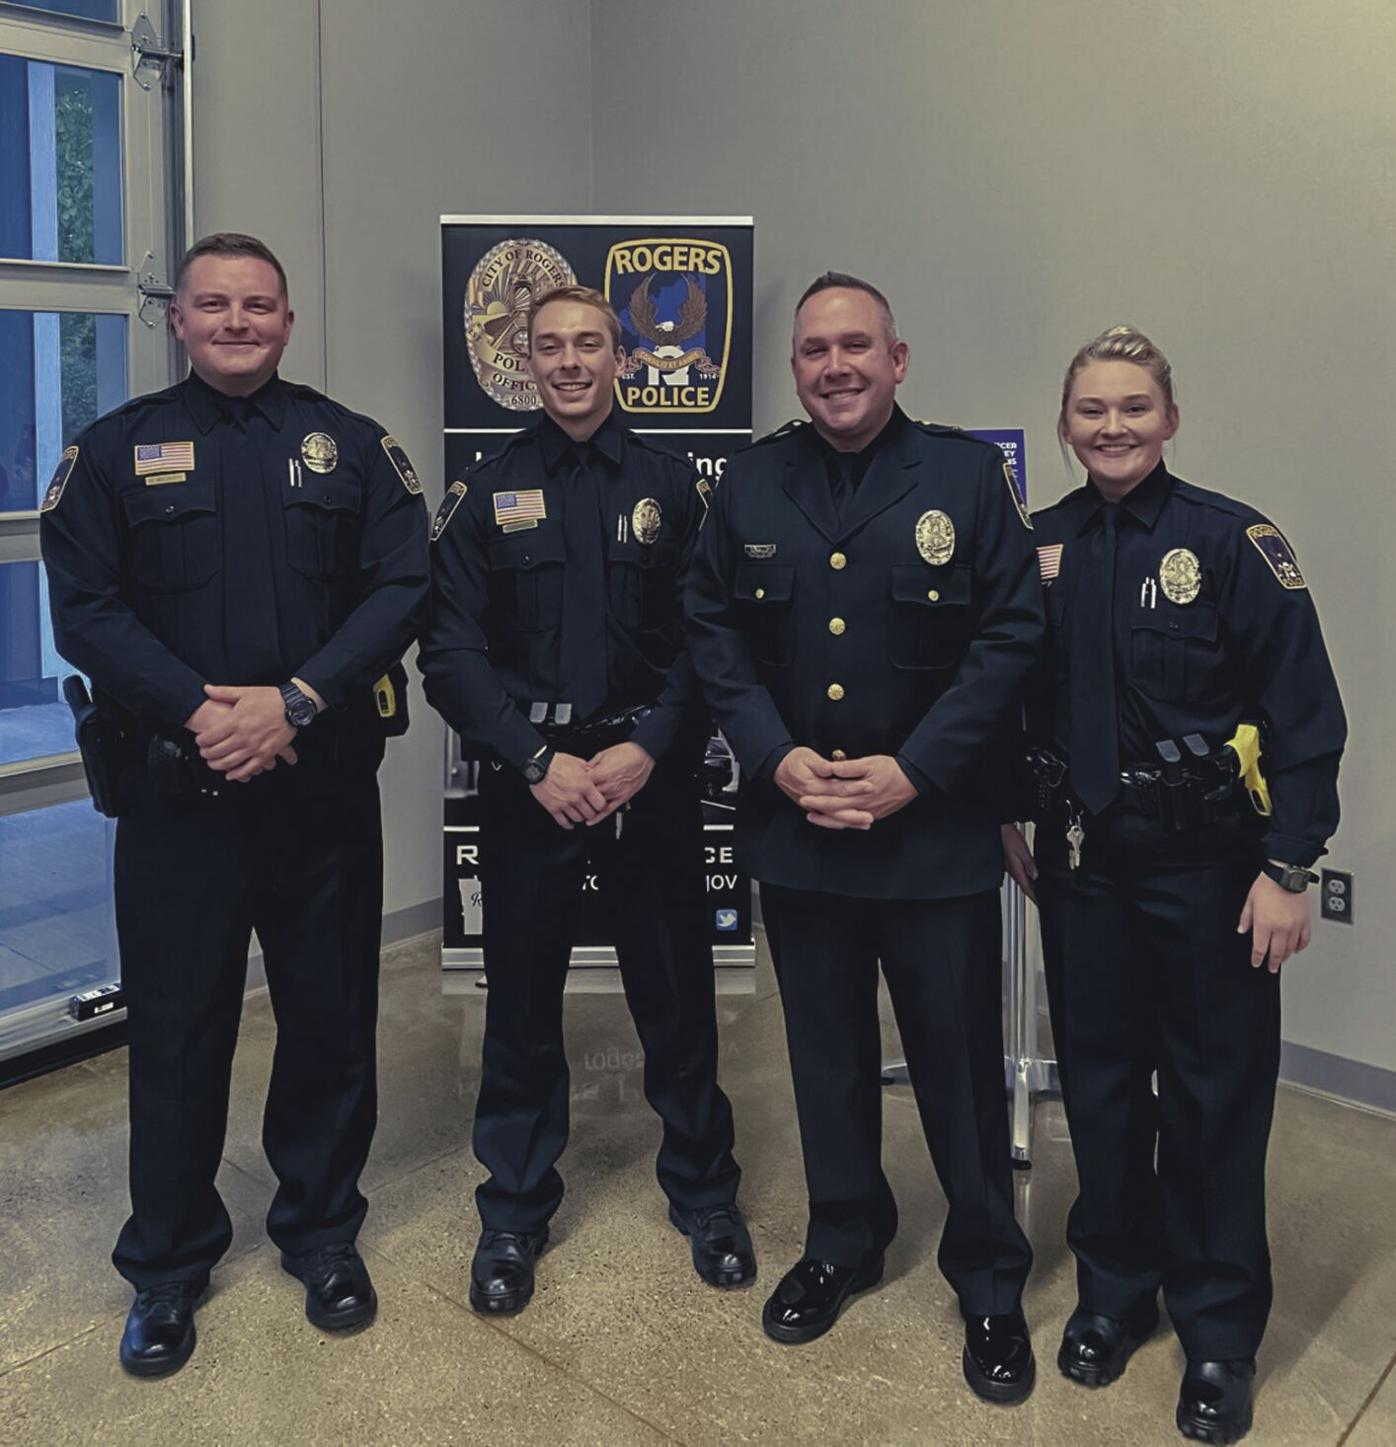 3 new cops sworn in at Rogers Council meeting, 2 officers promoted